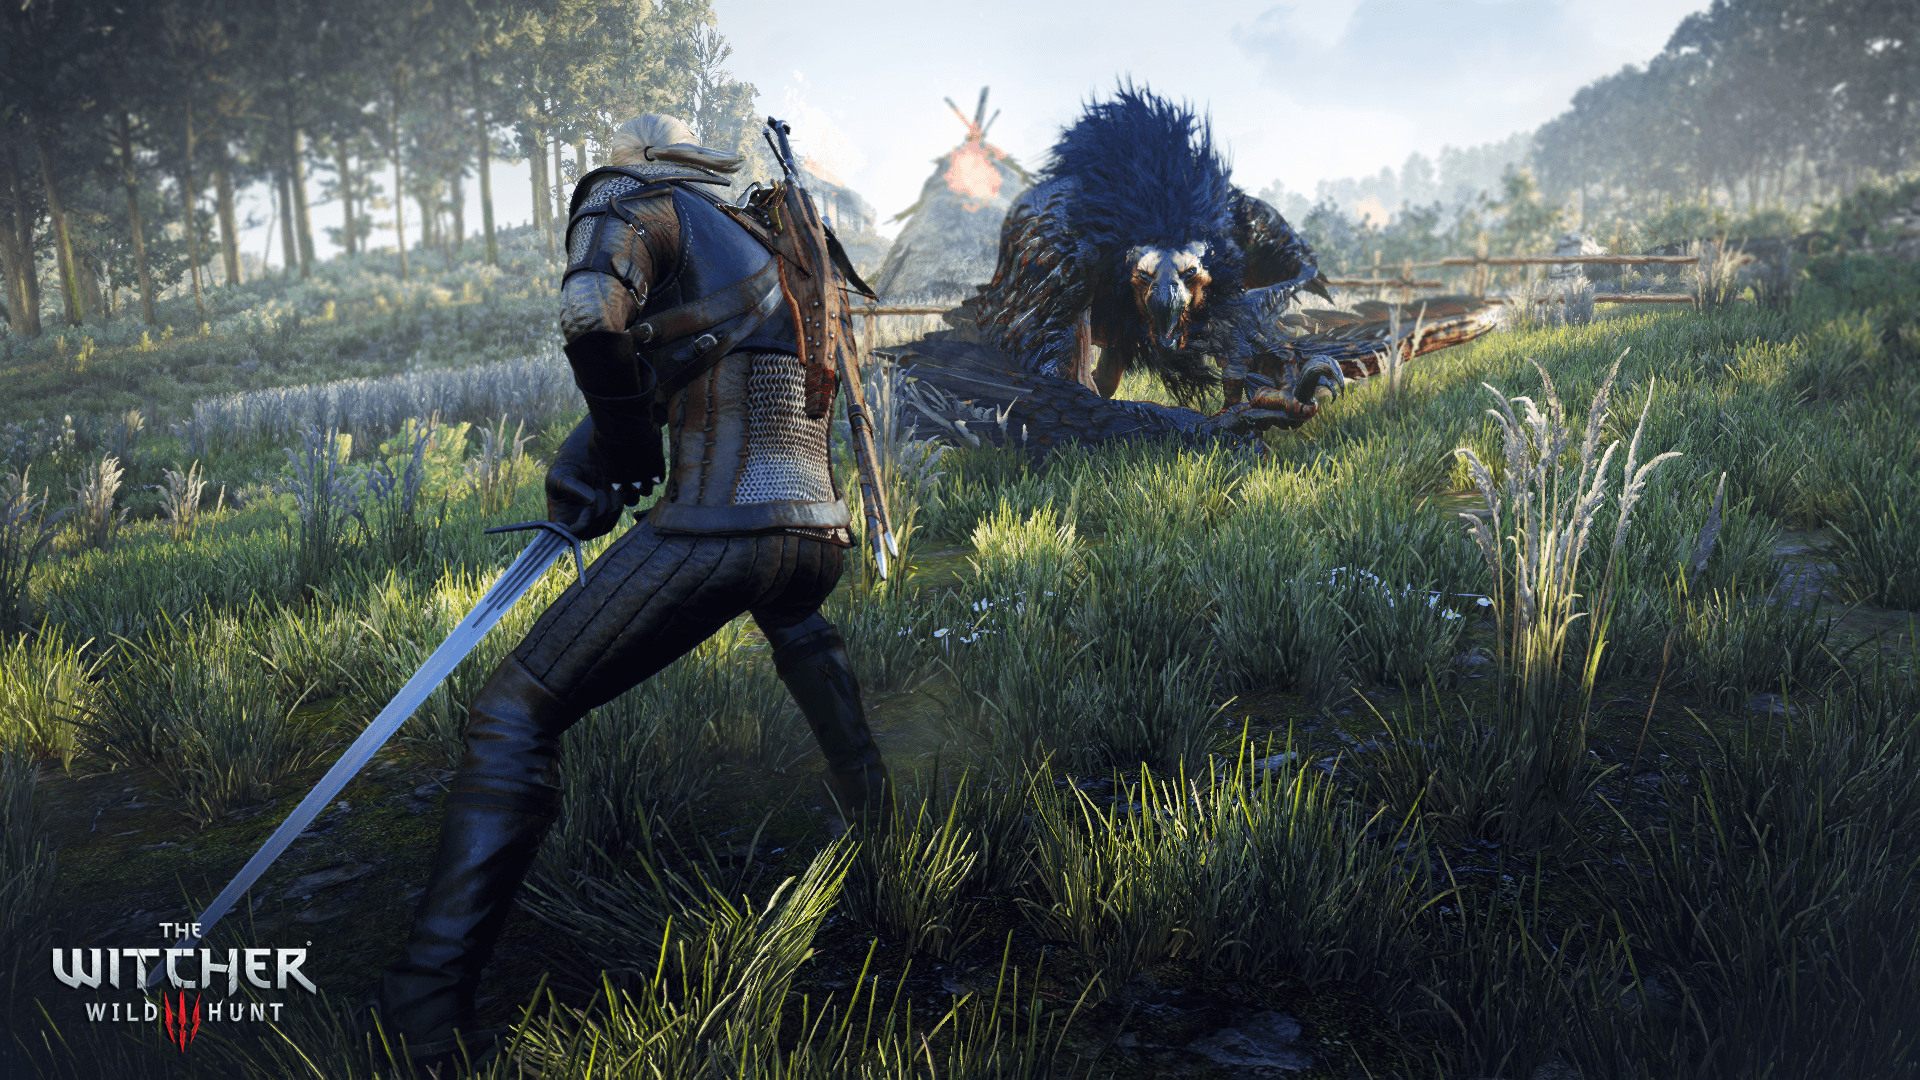 Witcher 3 Wild Hunt image #1